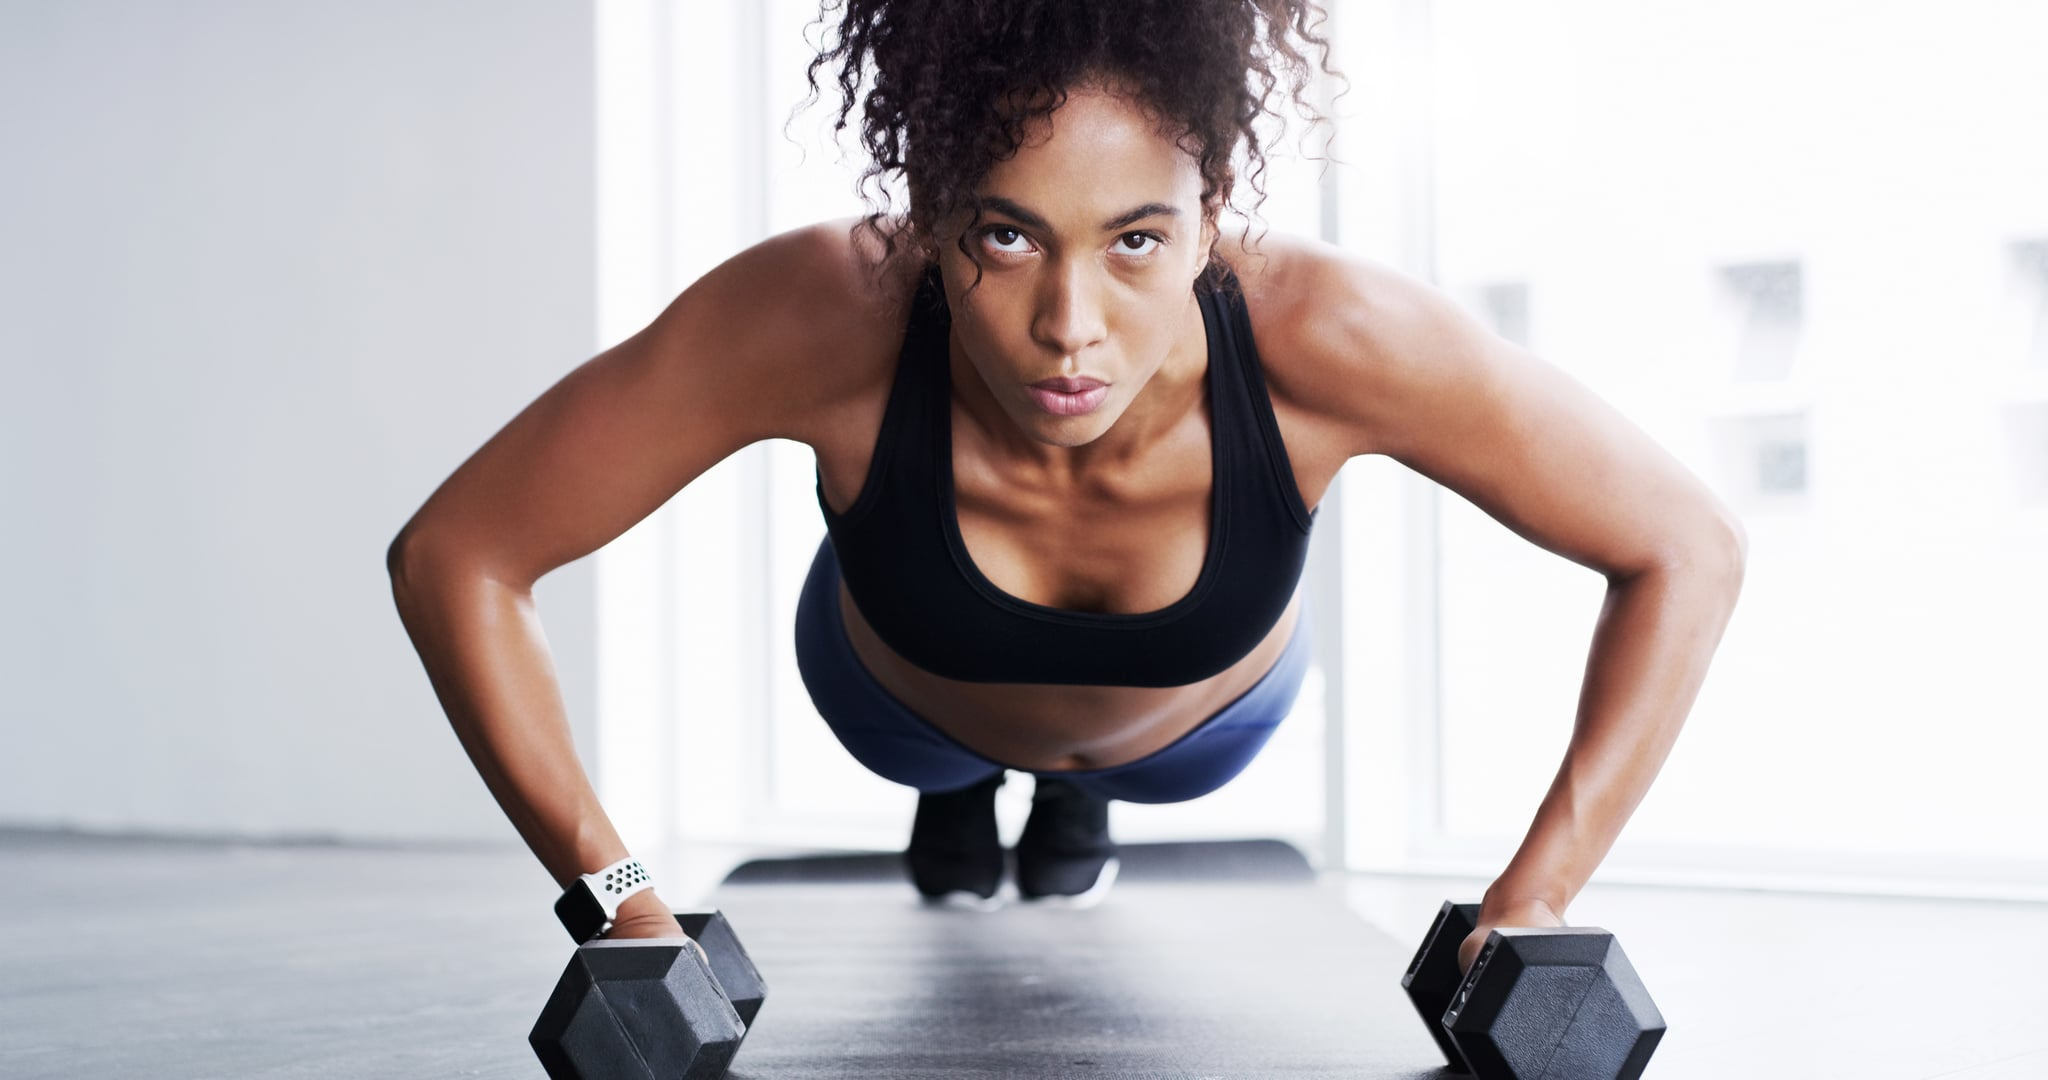 Shot of a young woman working out with dumbbells in a gym